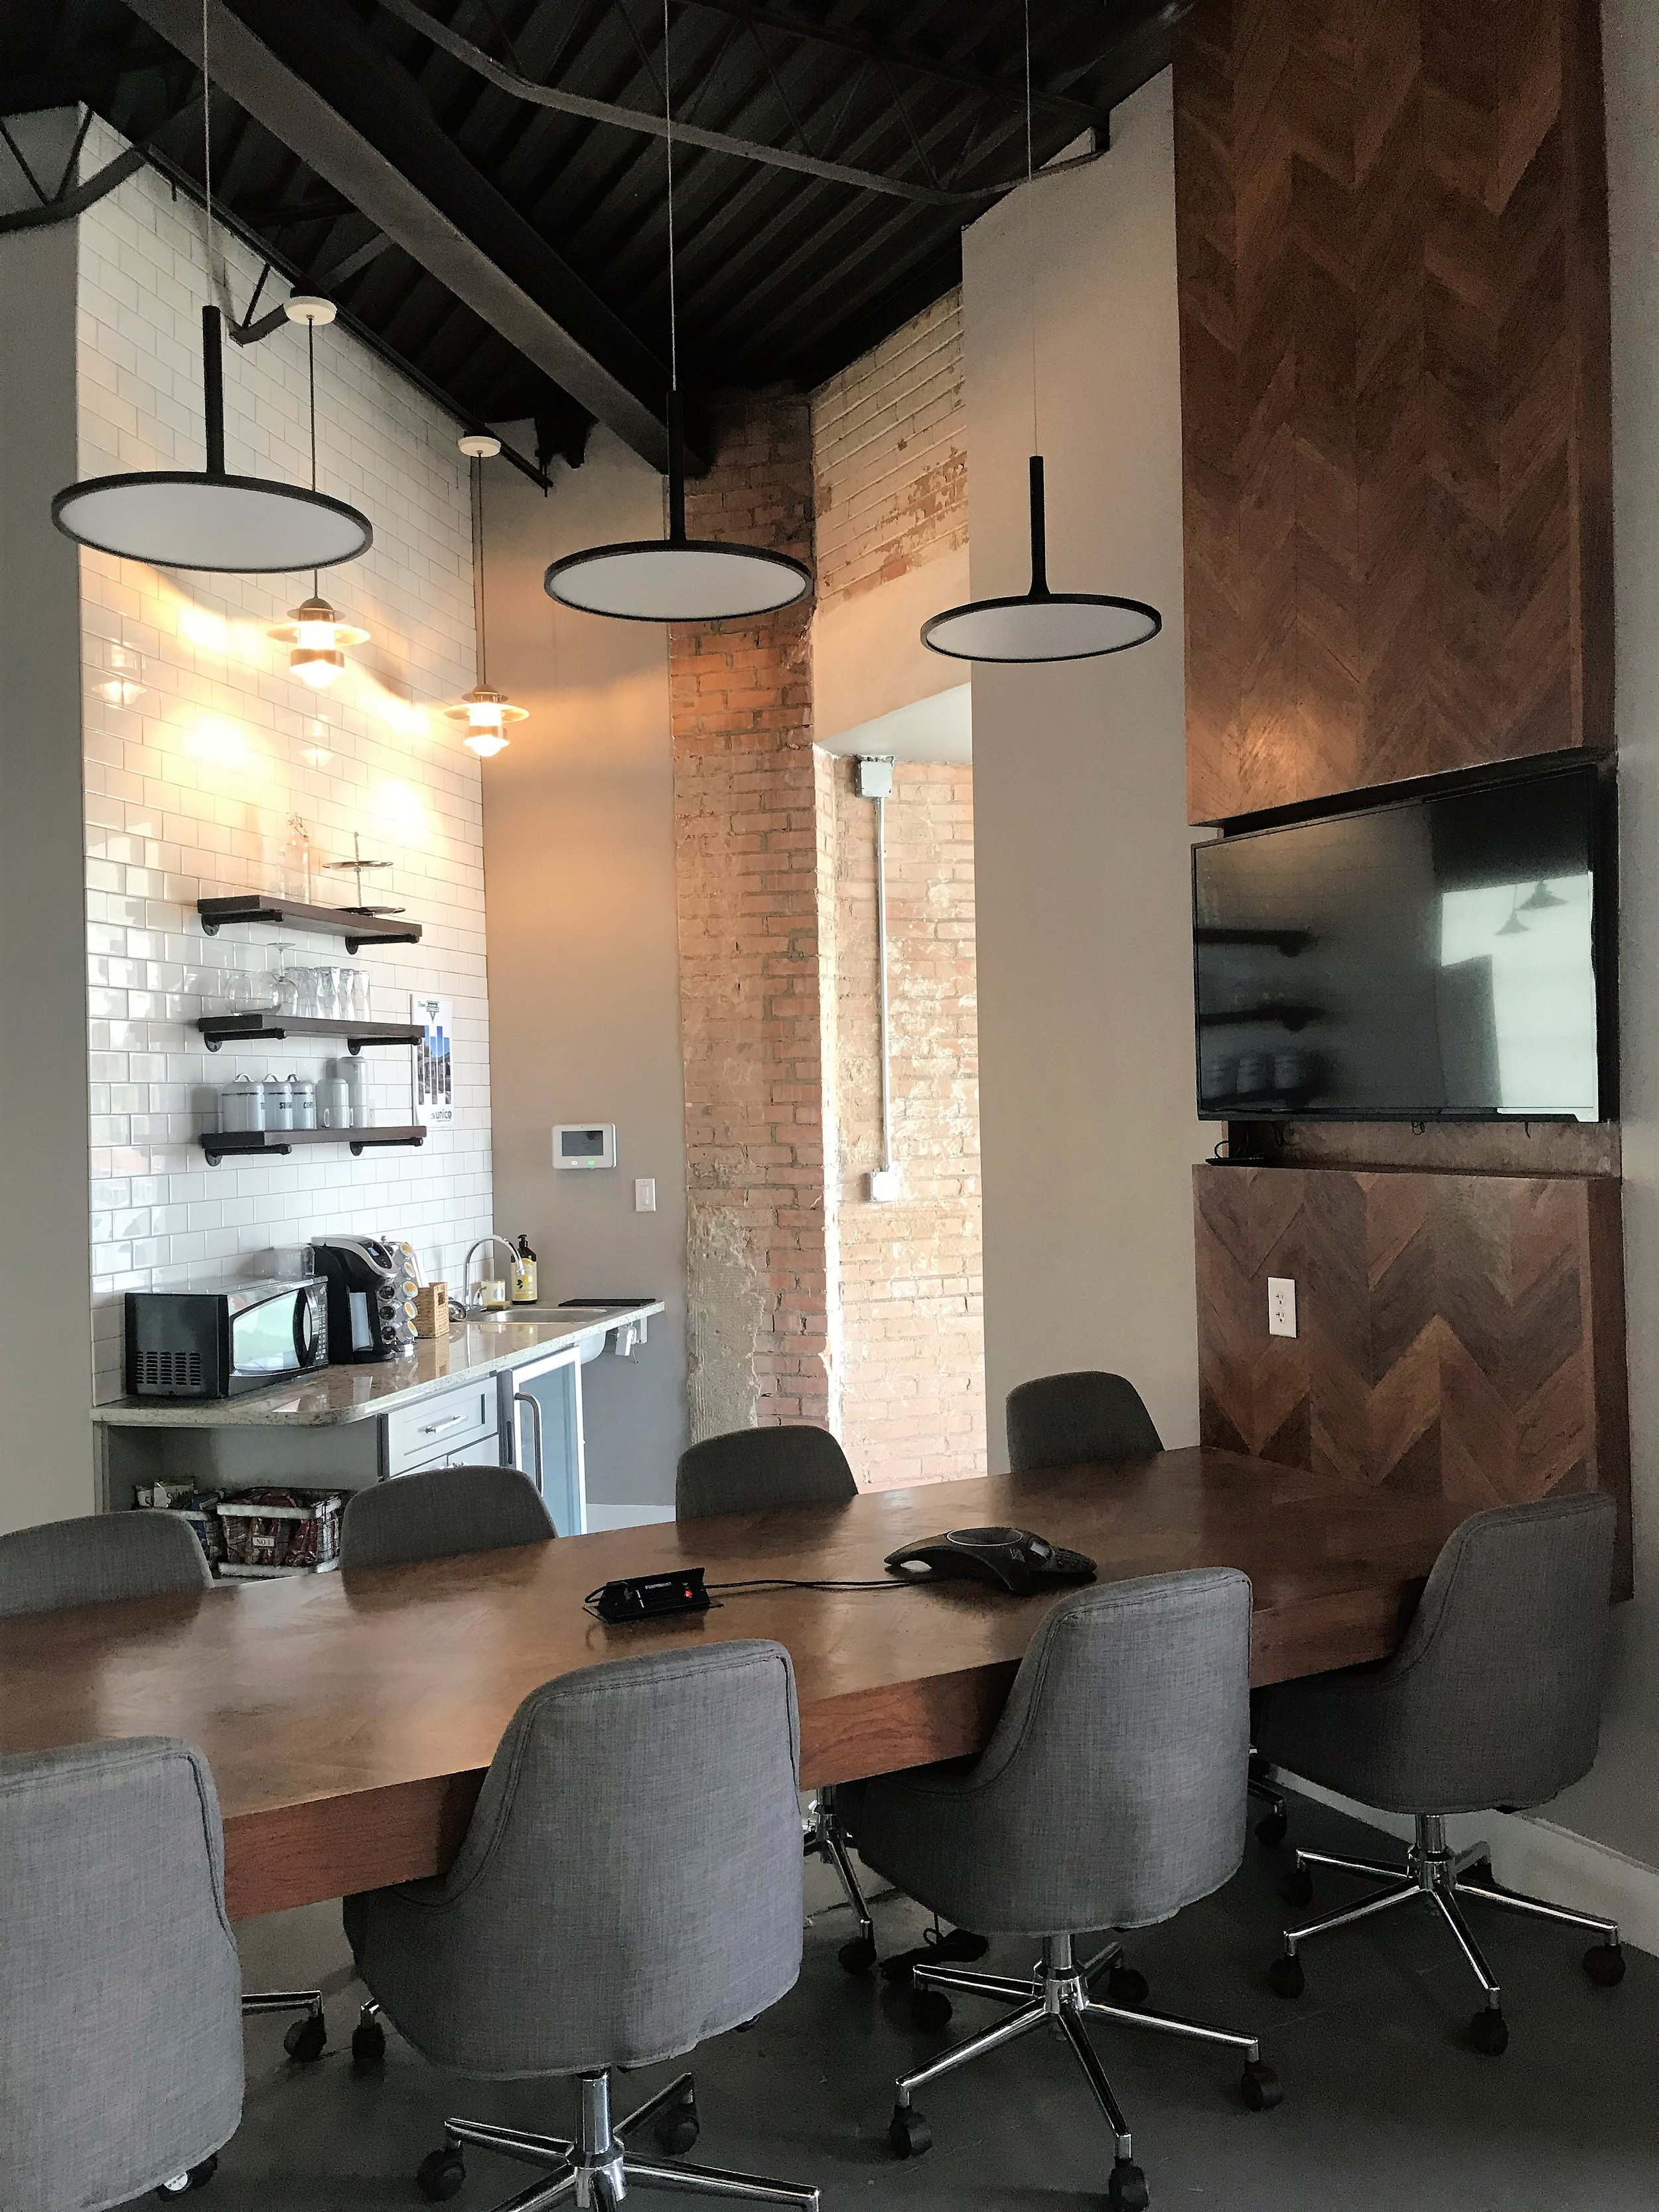 Conference Table & Kitchenette - Unico.jpg